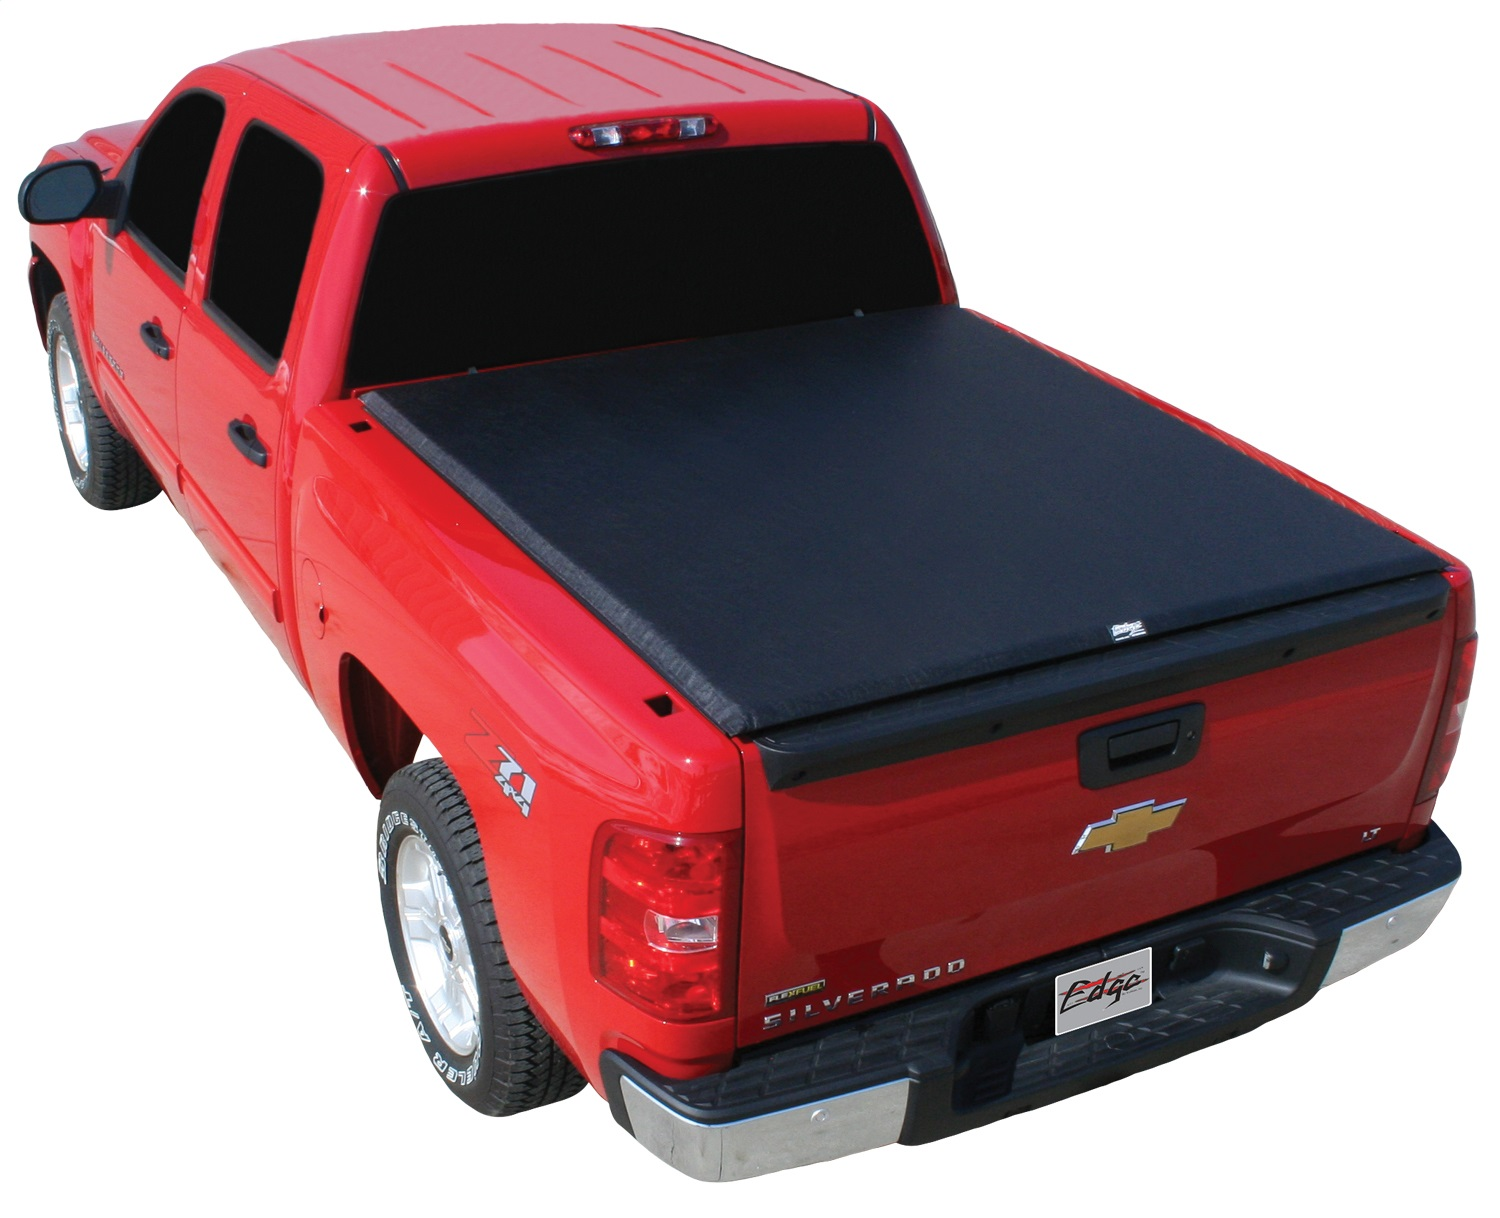 Truxedo (Shur-co) Tonneau Cover (881101)